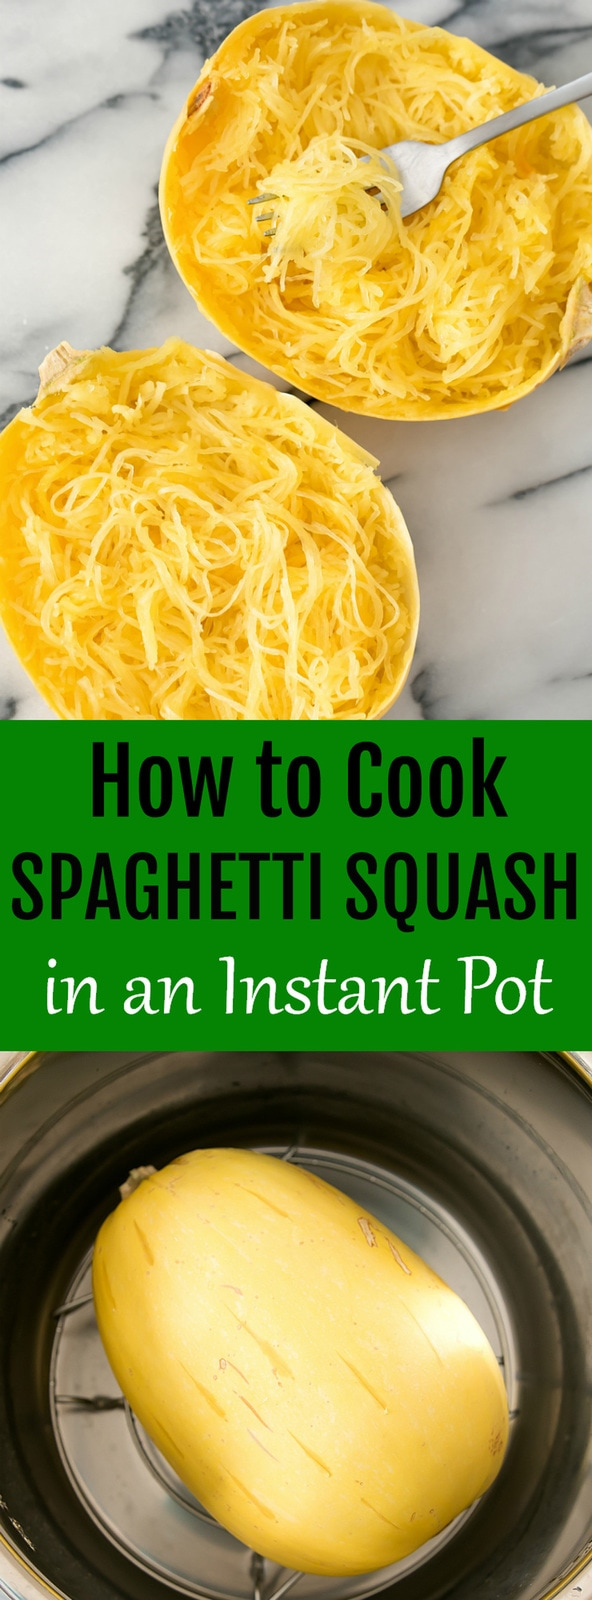 How to Cook Spaghetti Squash in the Instant Pot. This method is so quick and easy. The squash is cooked in about 15 minutes! Step by step tutorial and video included.